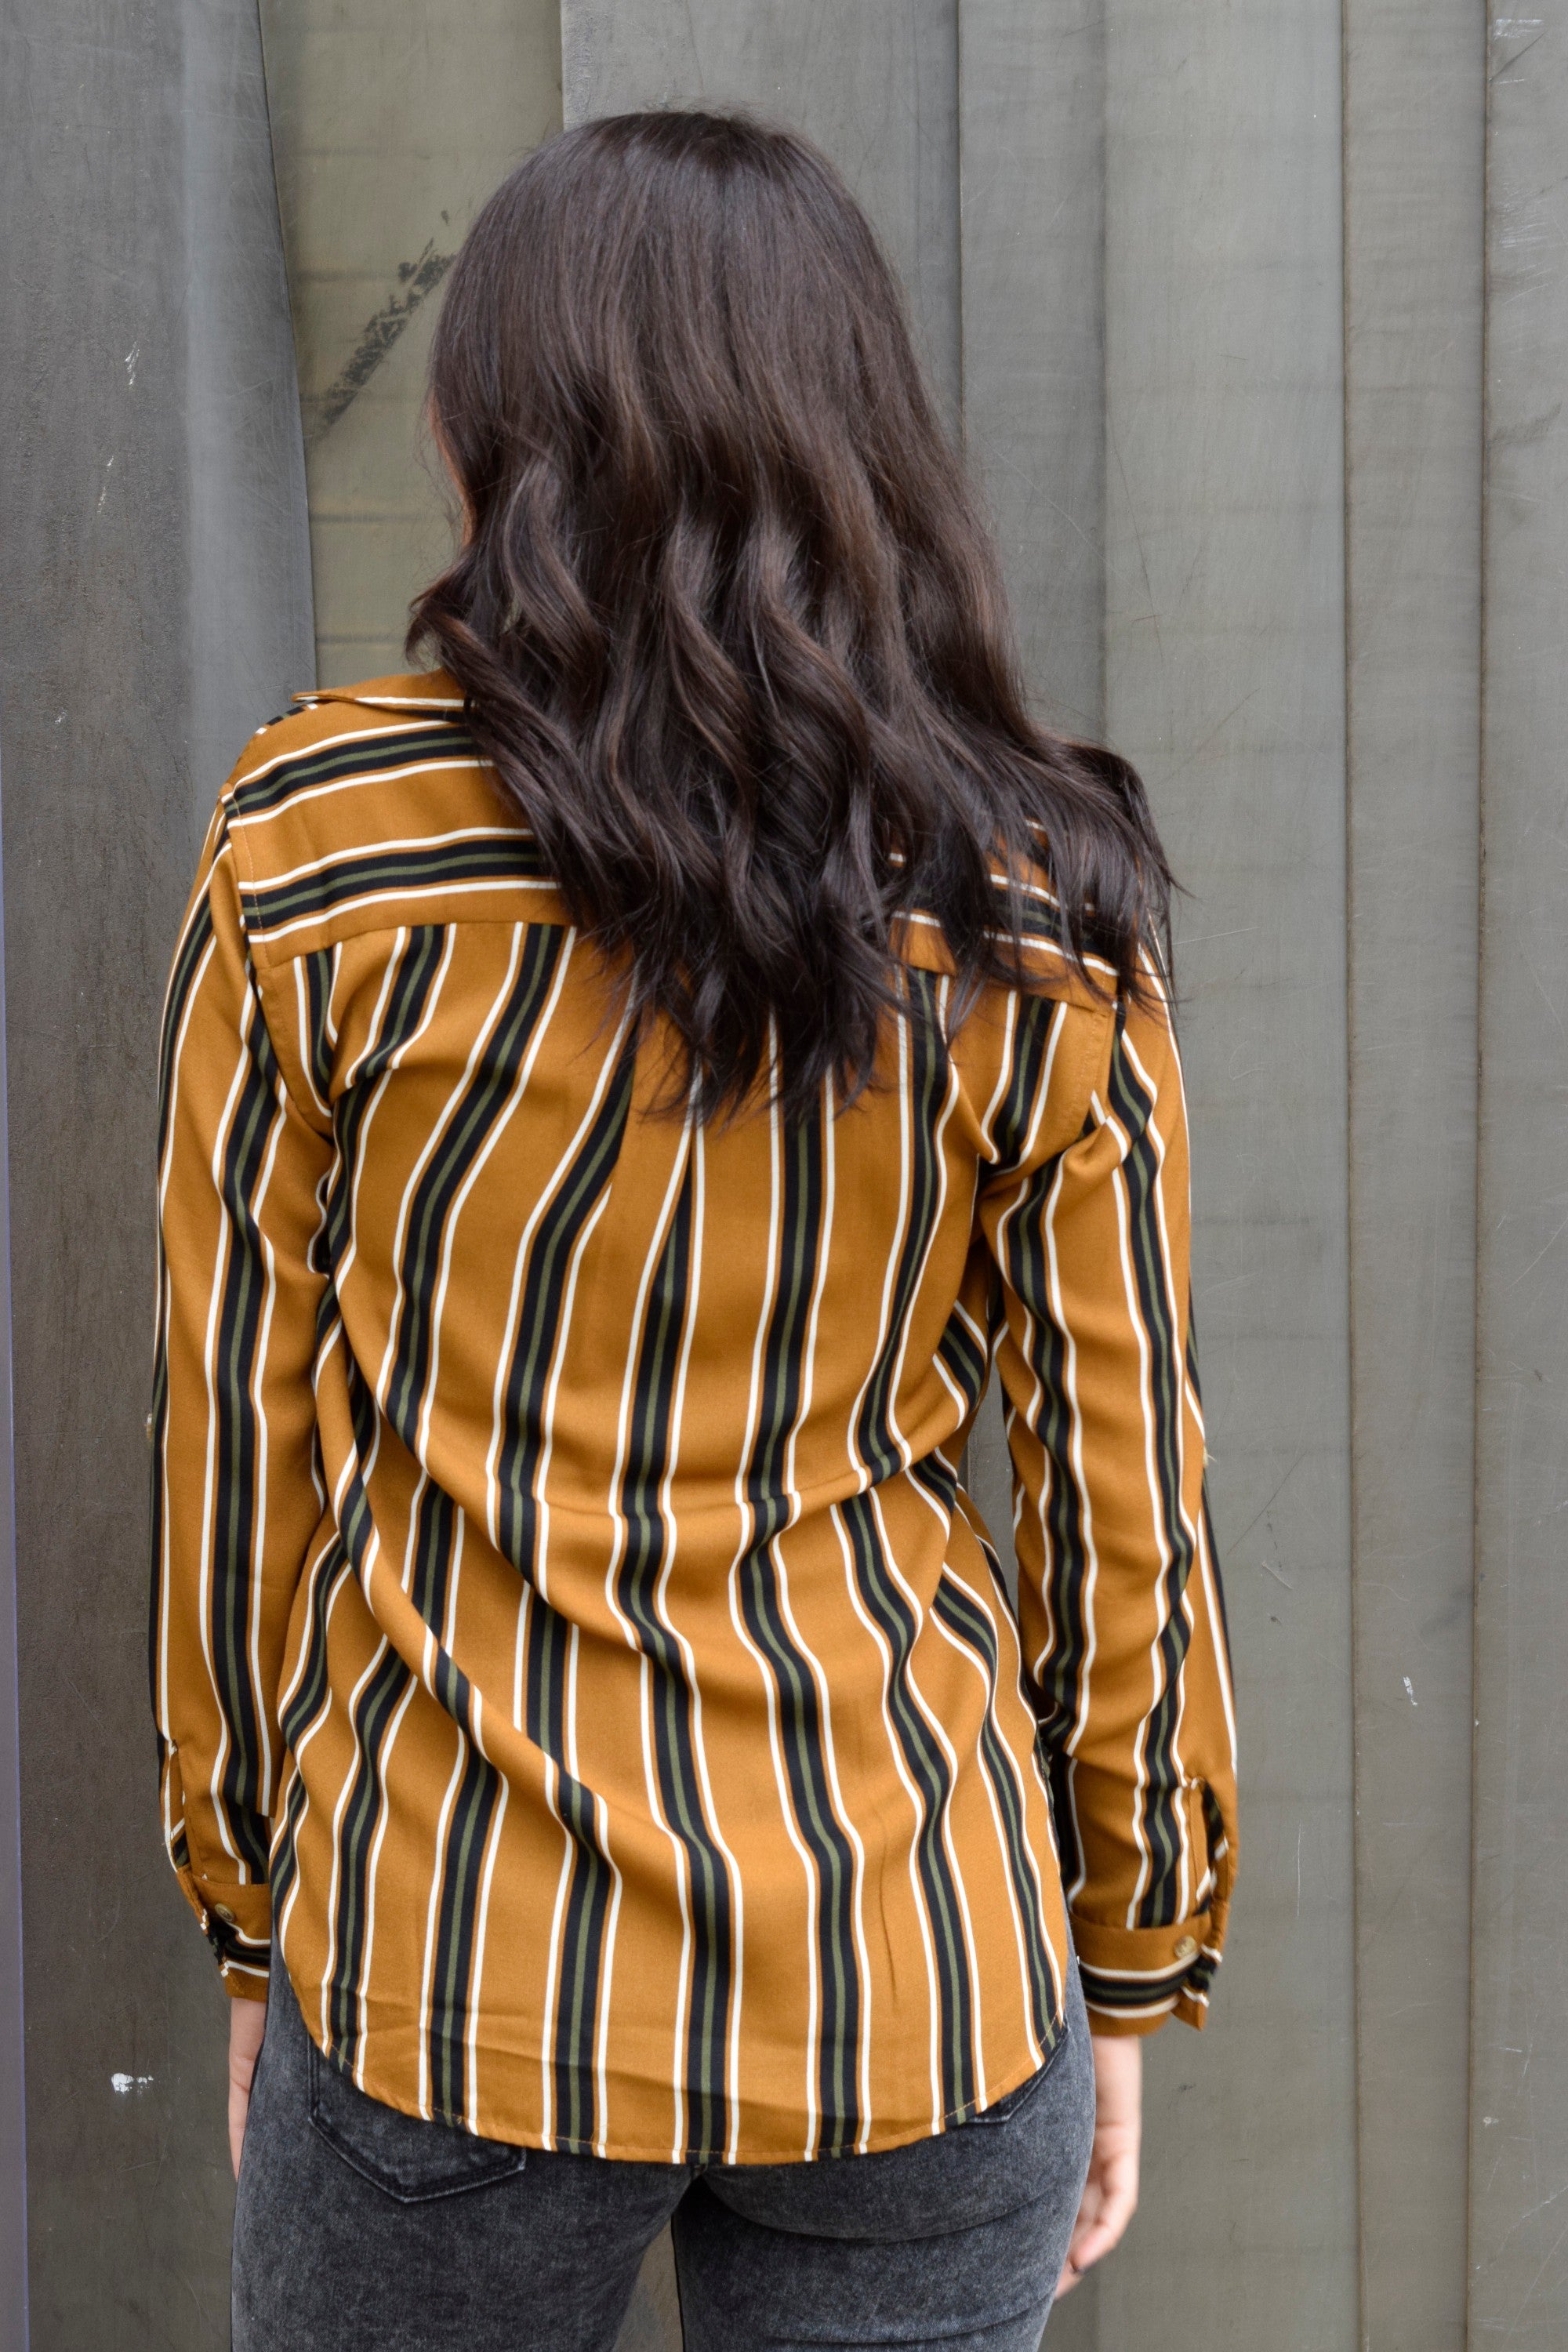 ALL THE STRIPE REASONS MUSTARD TOP